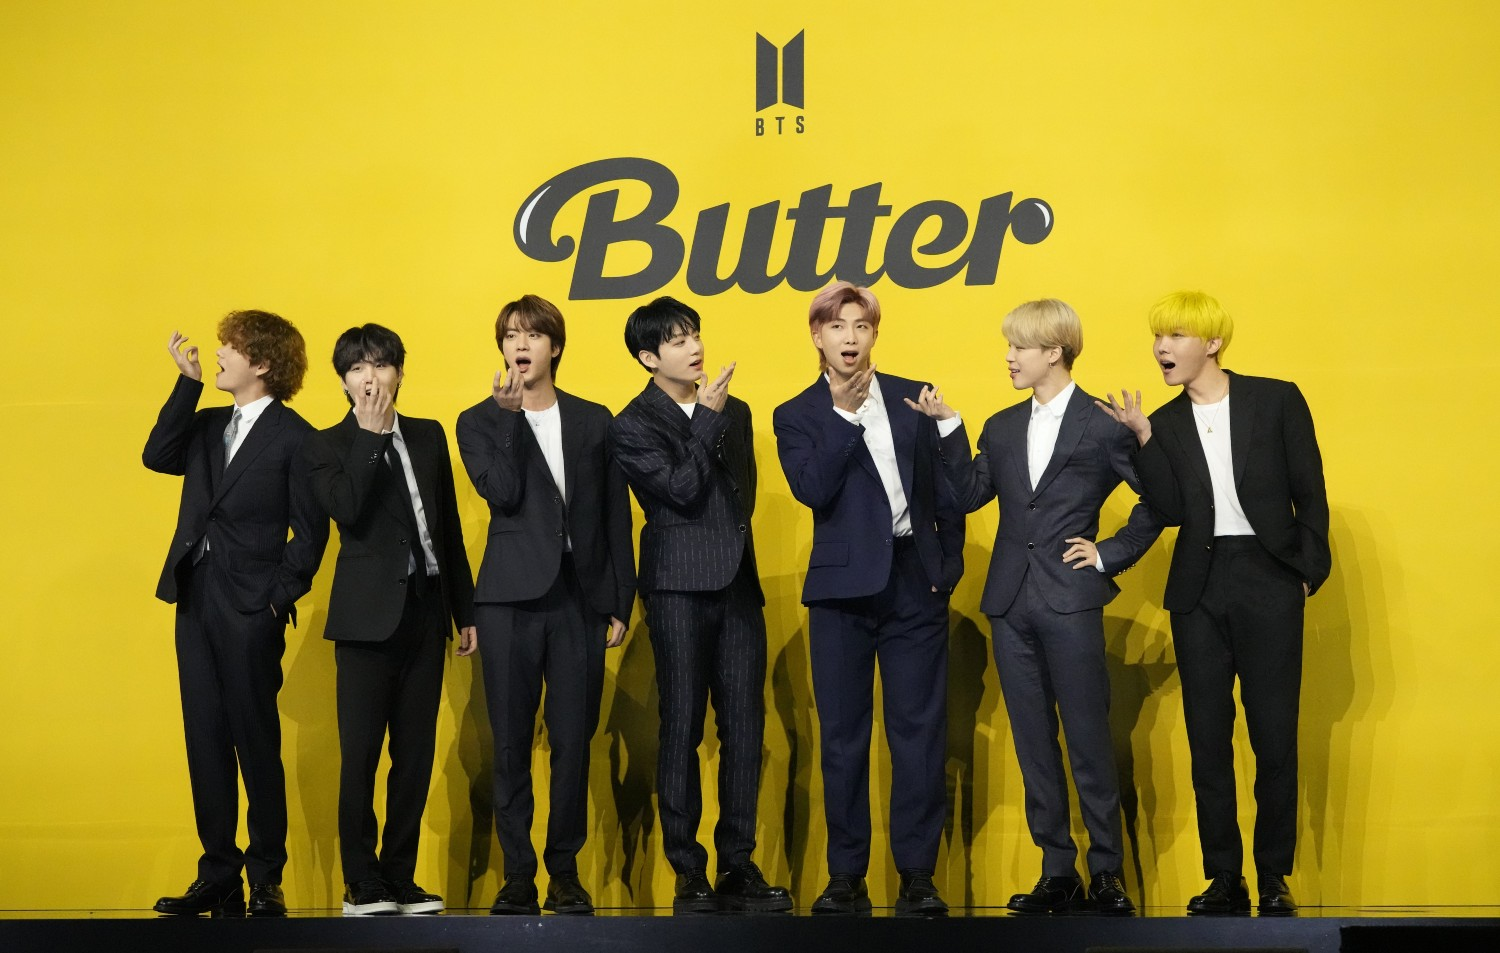 BTS - Butter - press conference